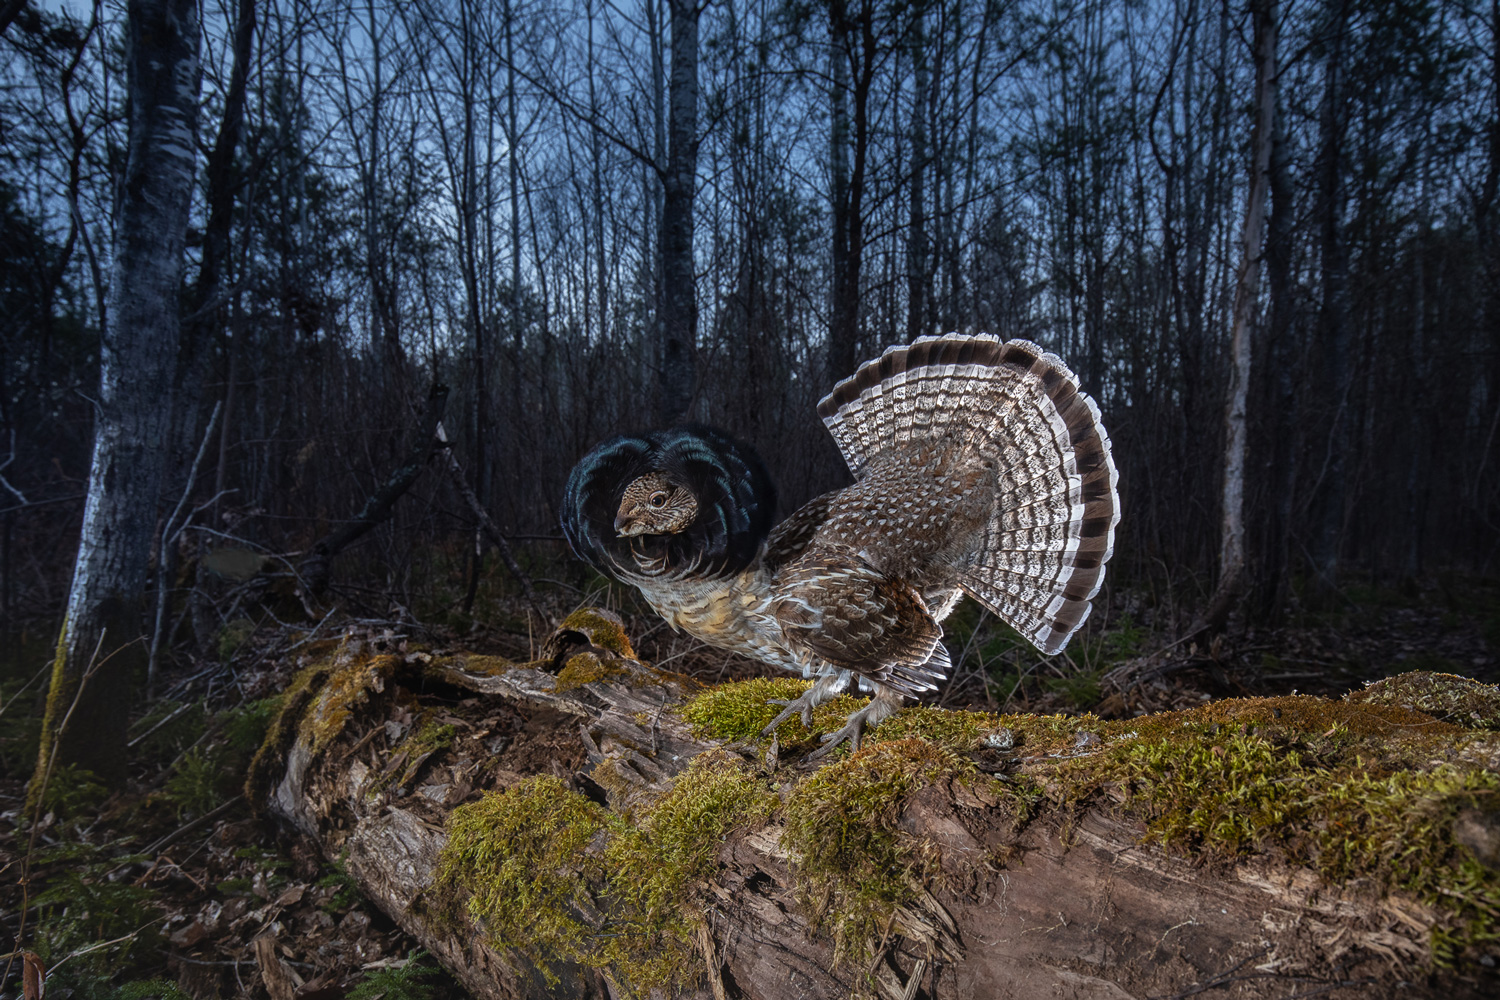 Ben Olson captures image of Grouse with Scout